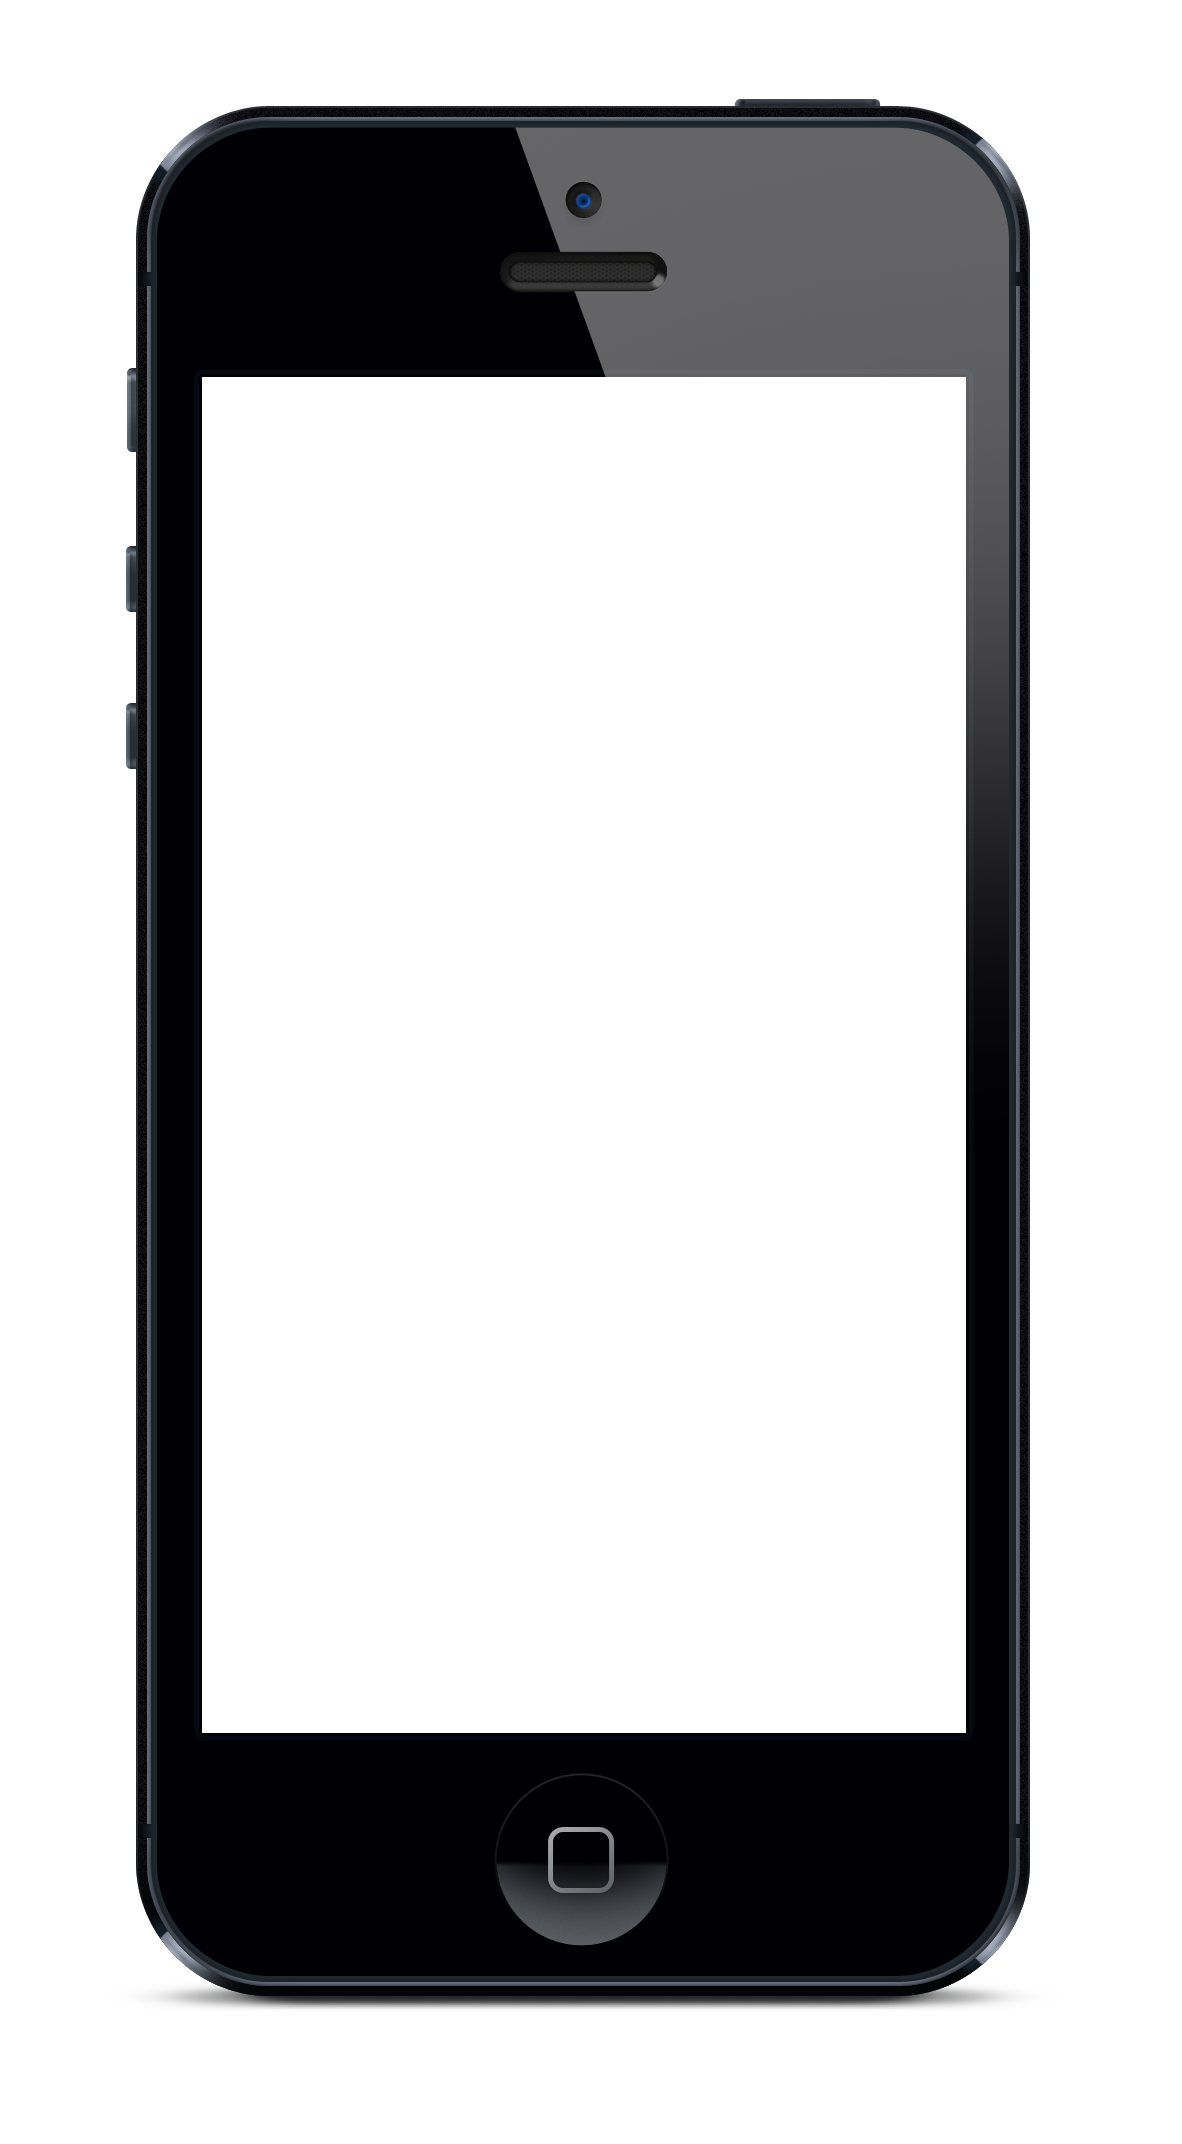 Download - Iphone PNG